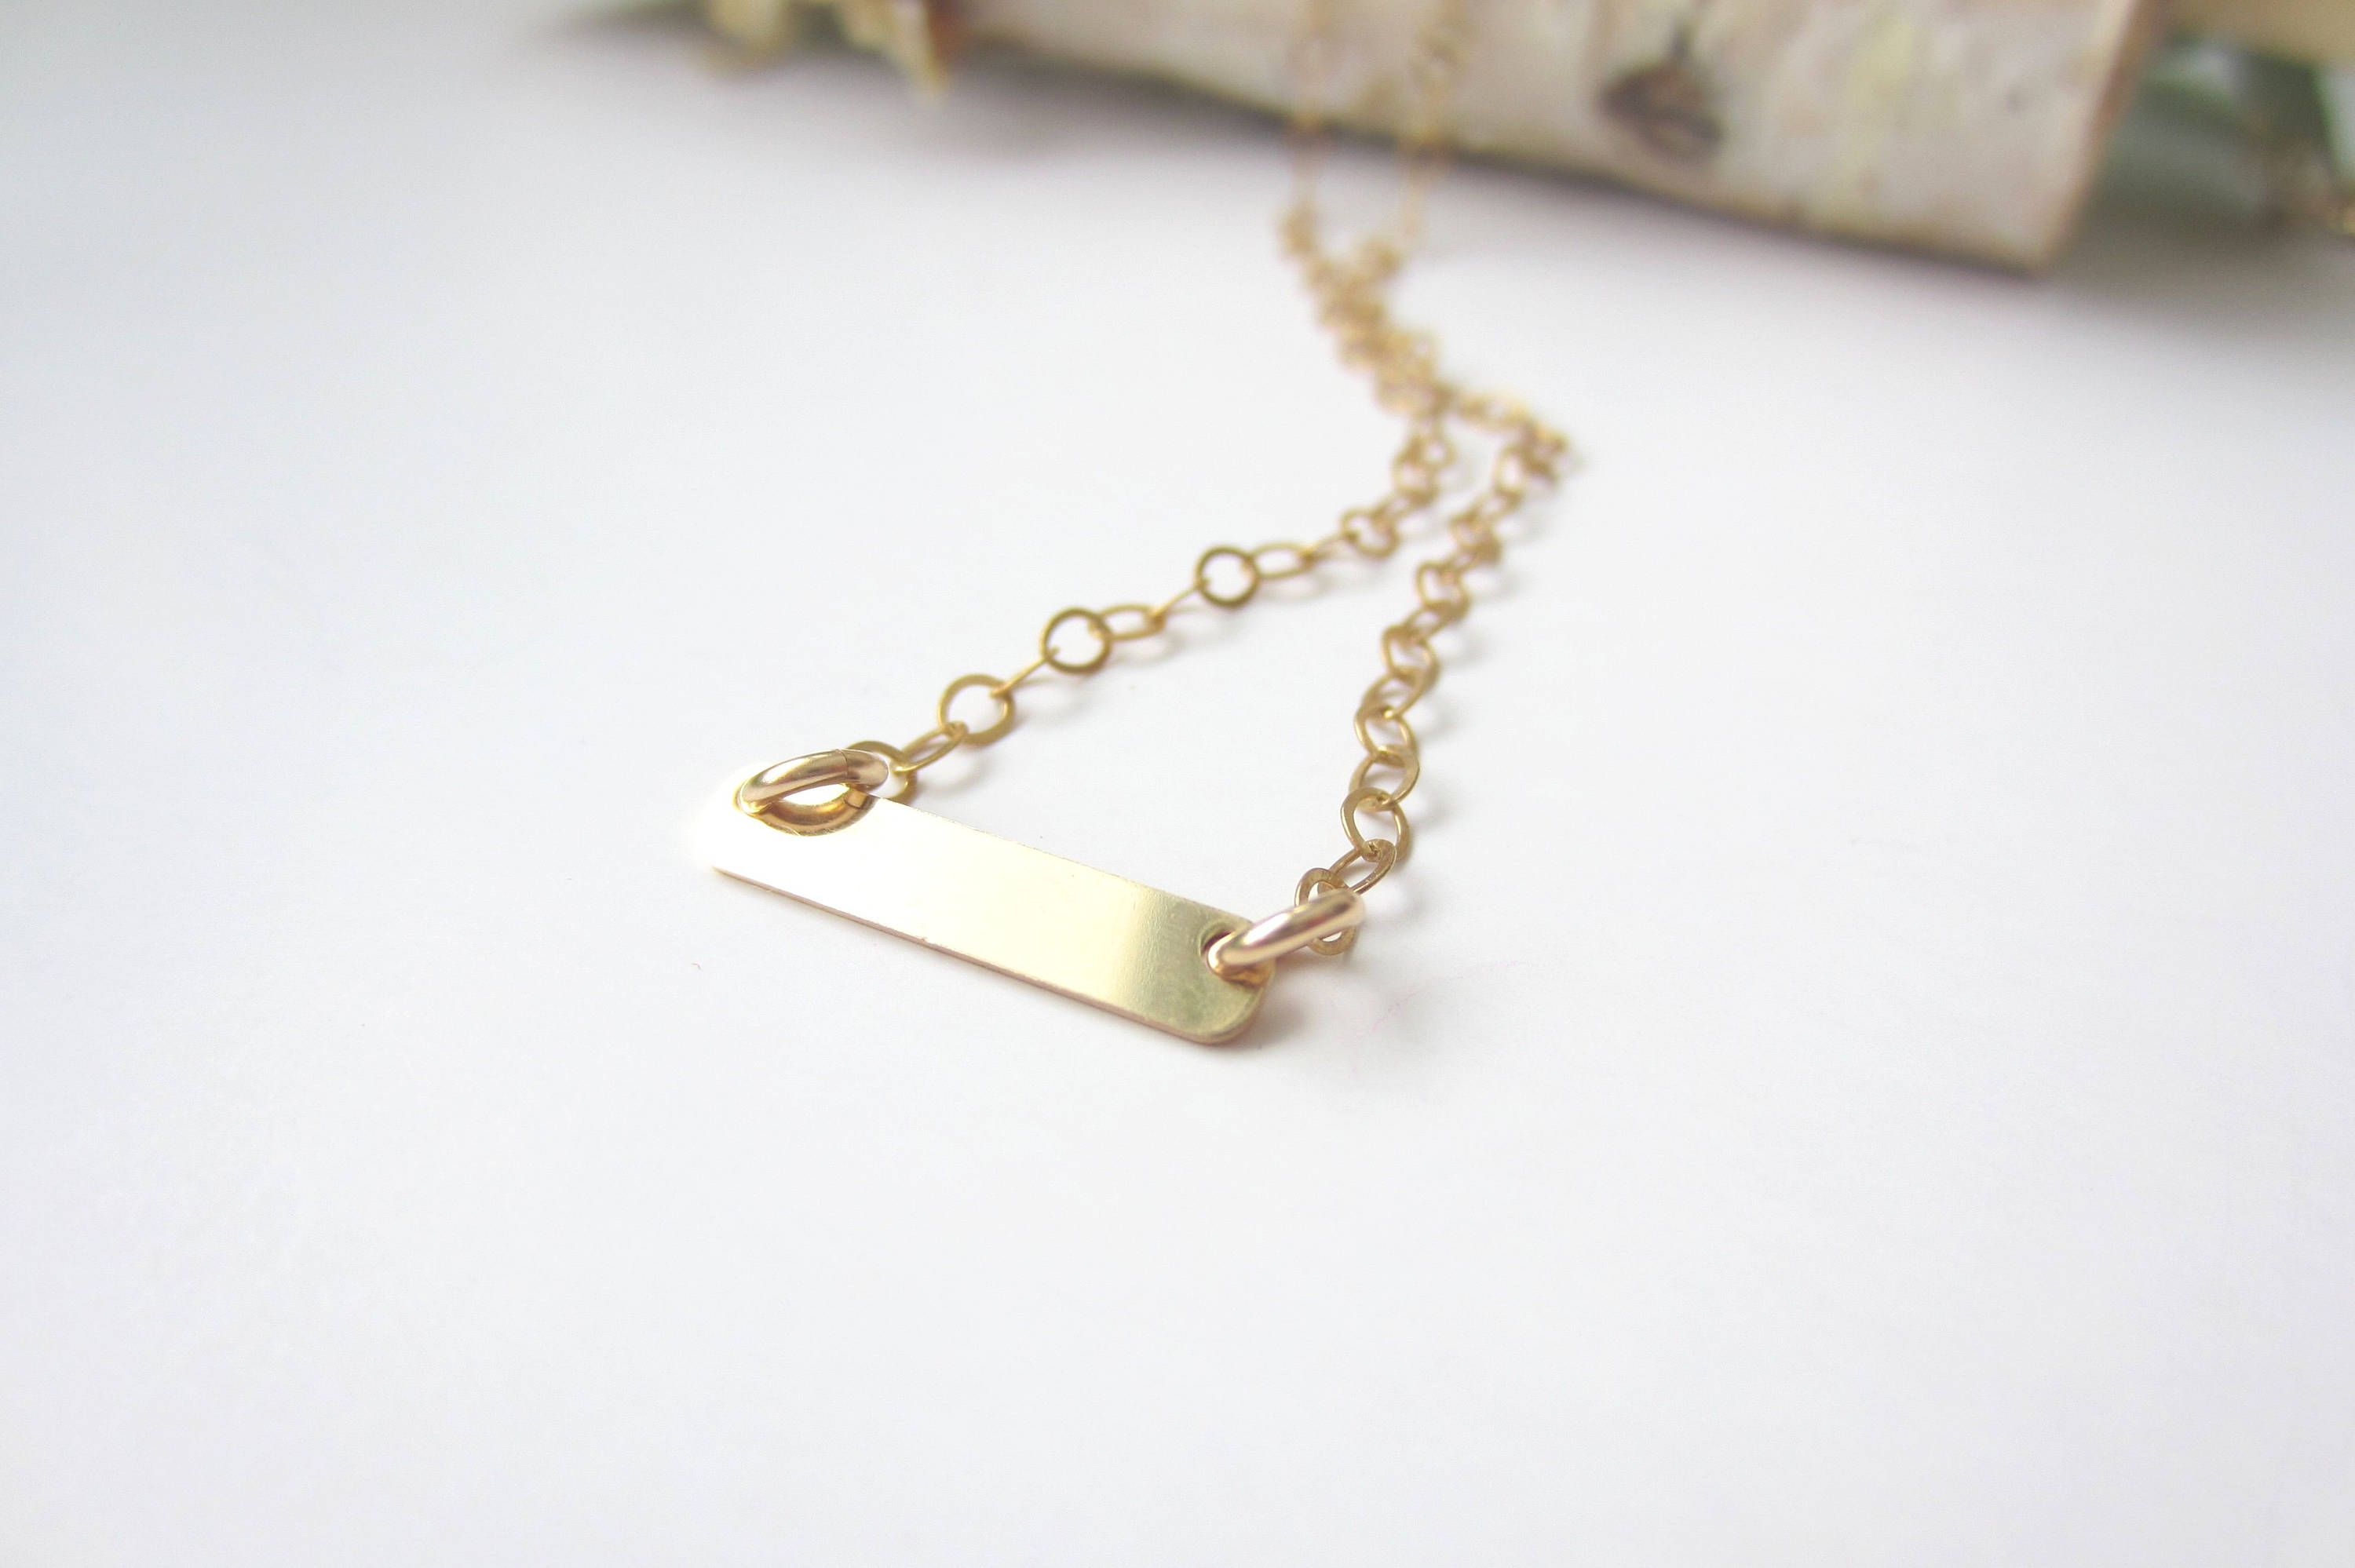 her fill necklace gift sageandolivia pendant on friday for black tiny filled gold by choker bar pin minimalist jewelry